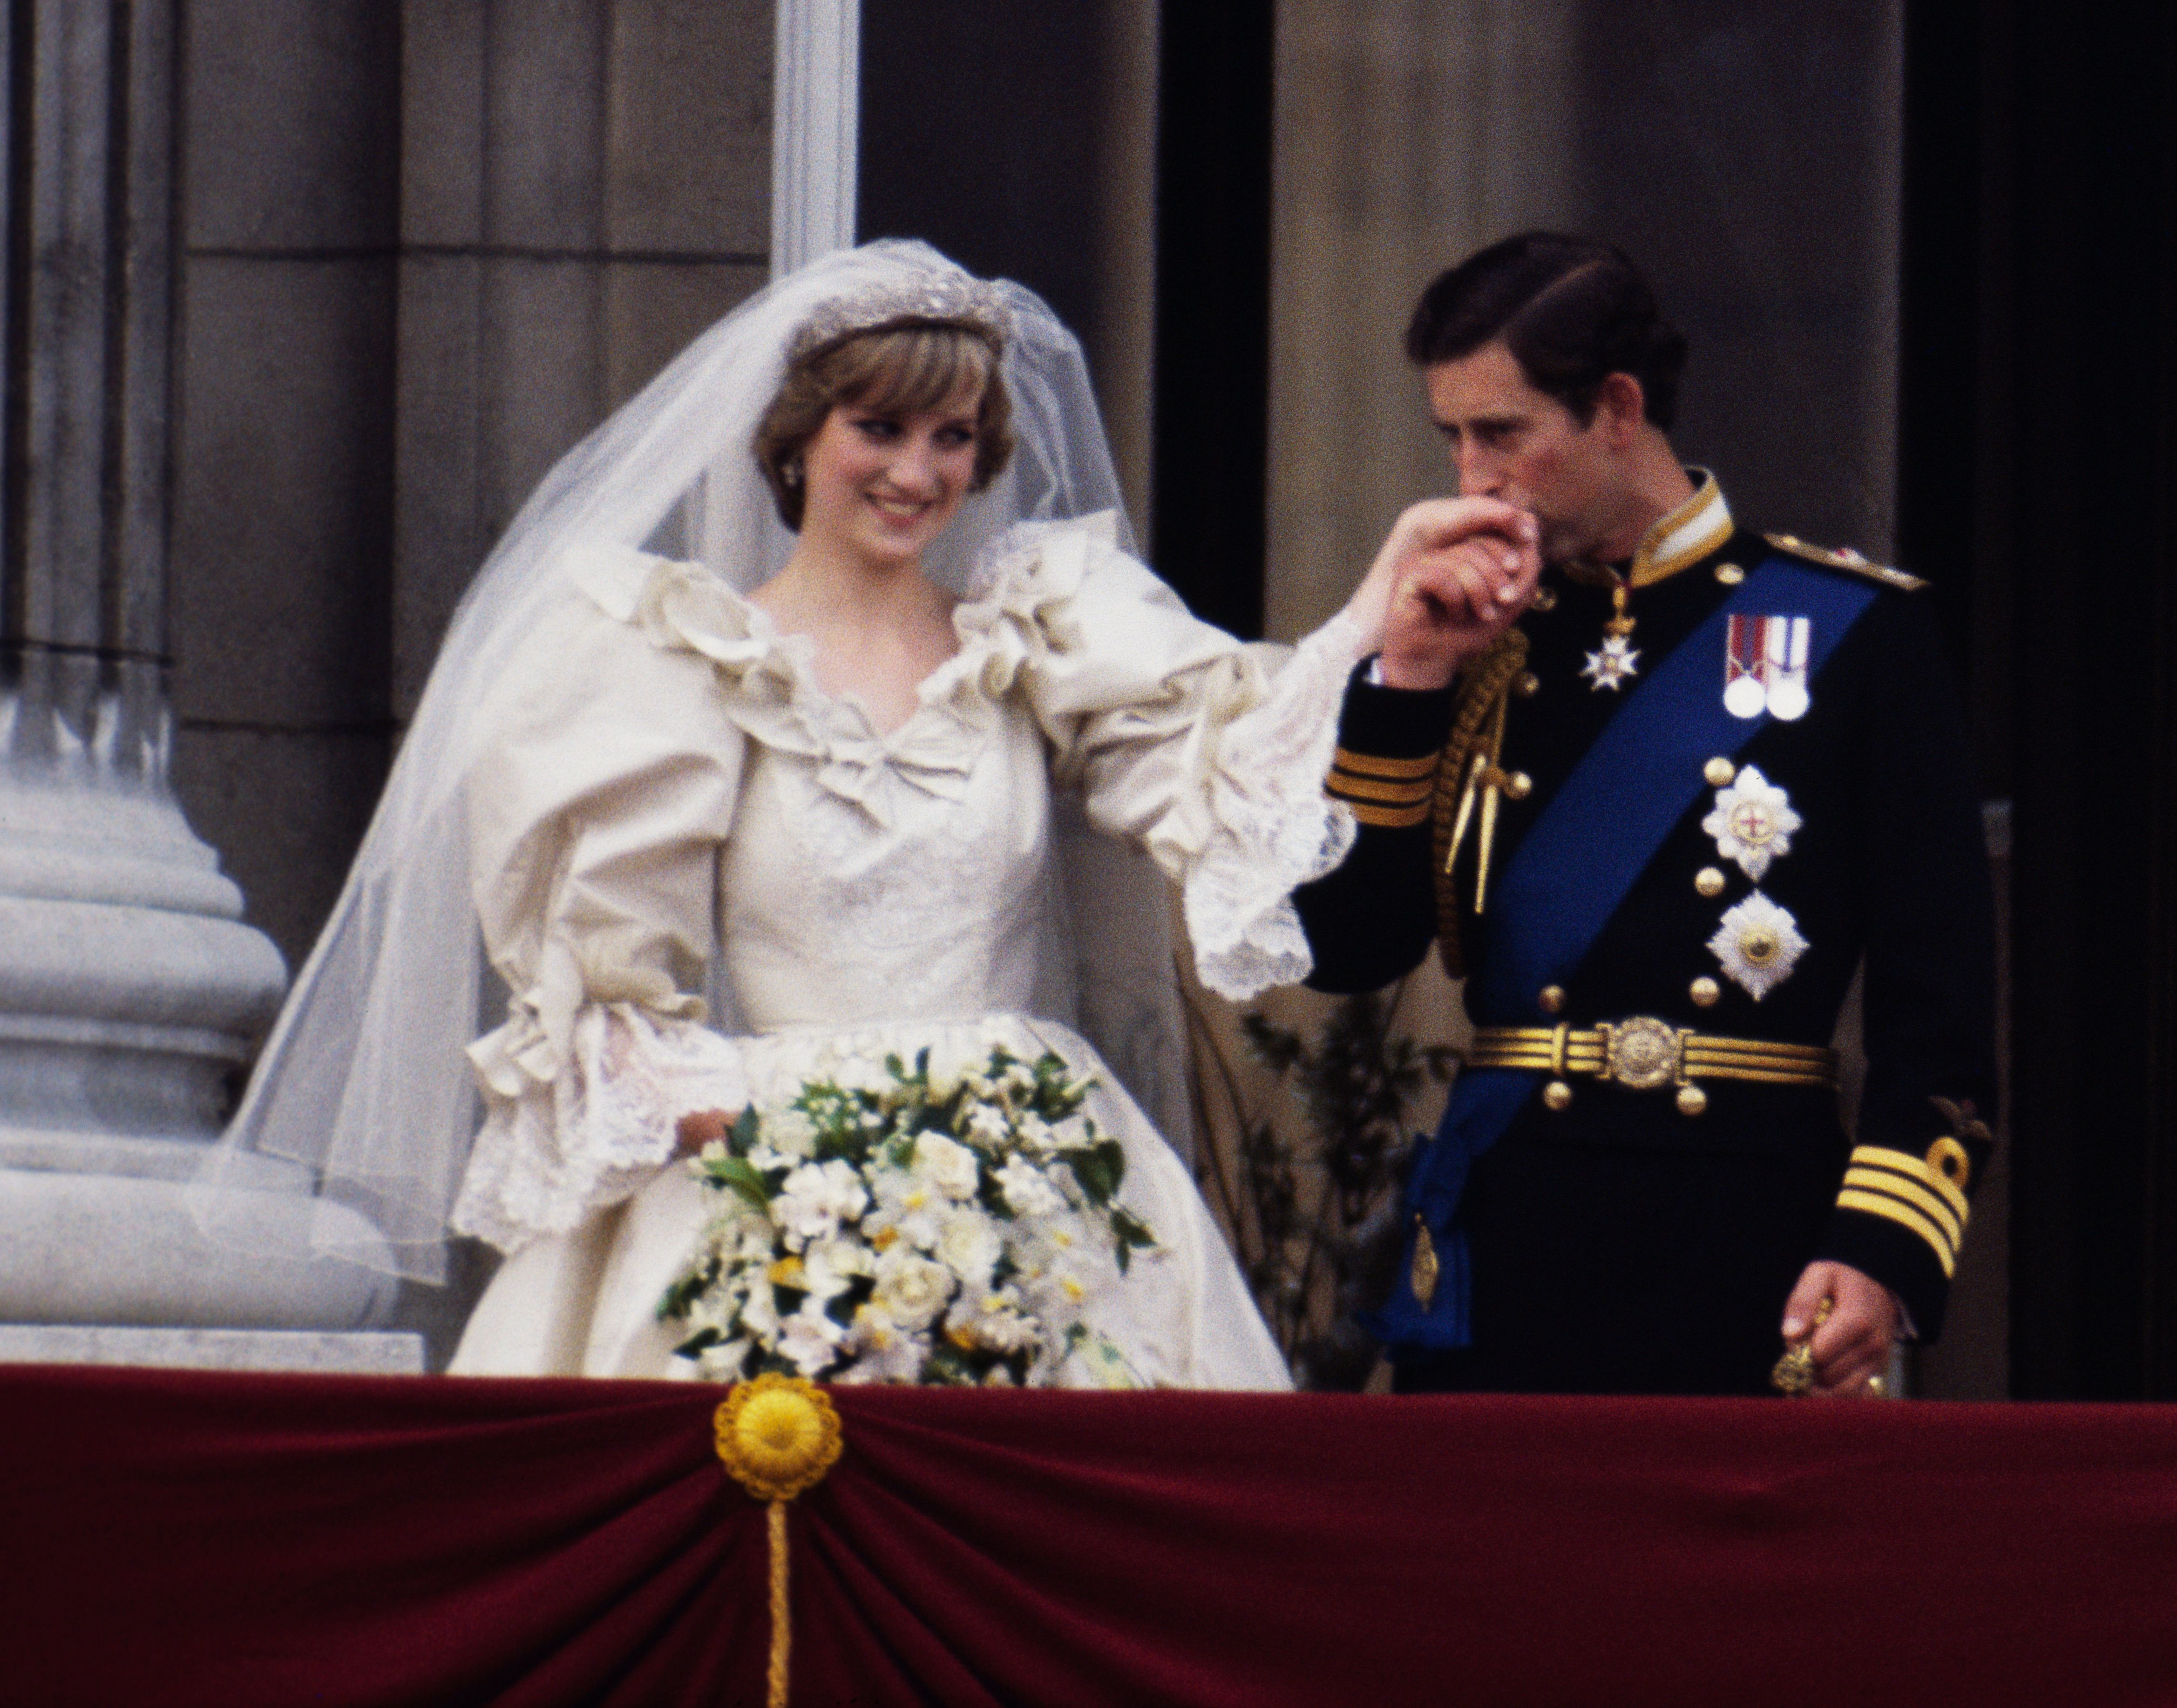 Charles donned a military uniform on his wedding day in July 1981.